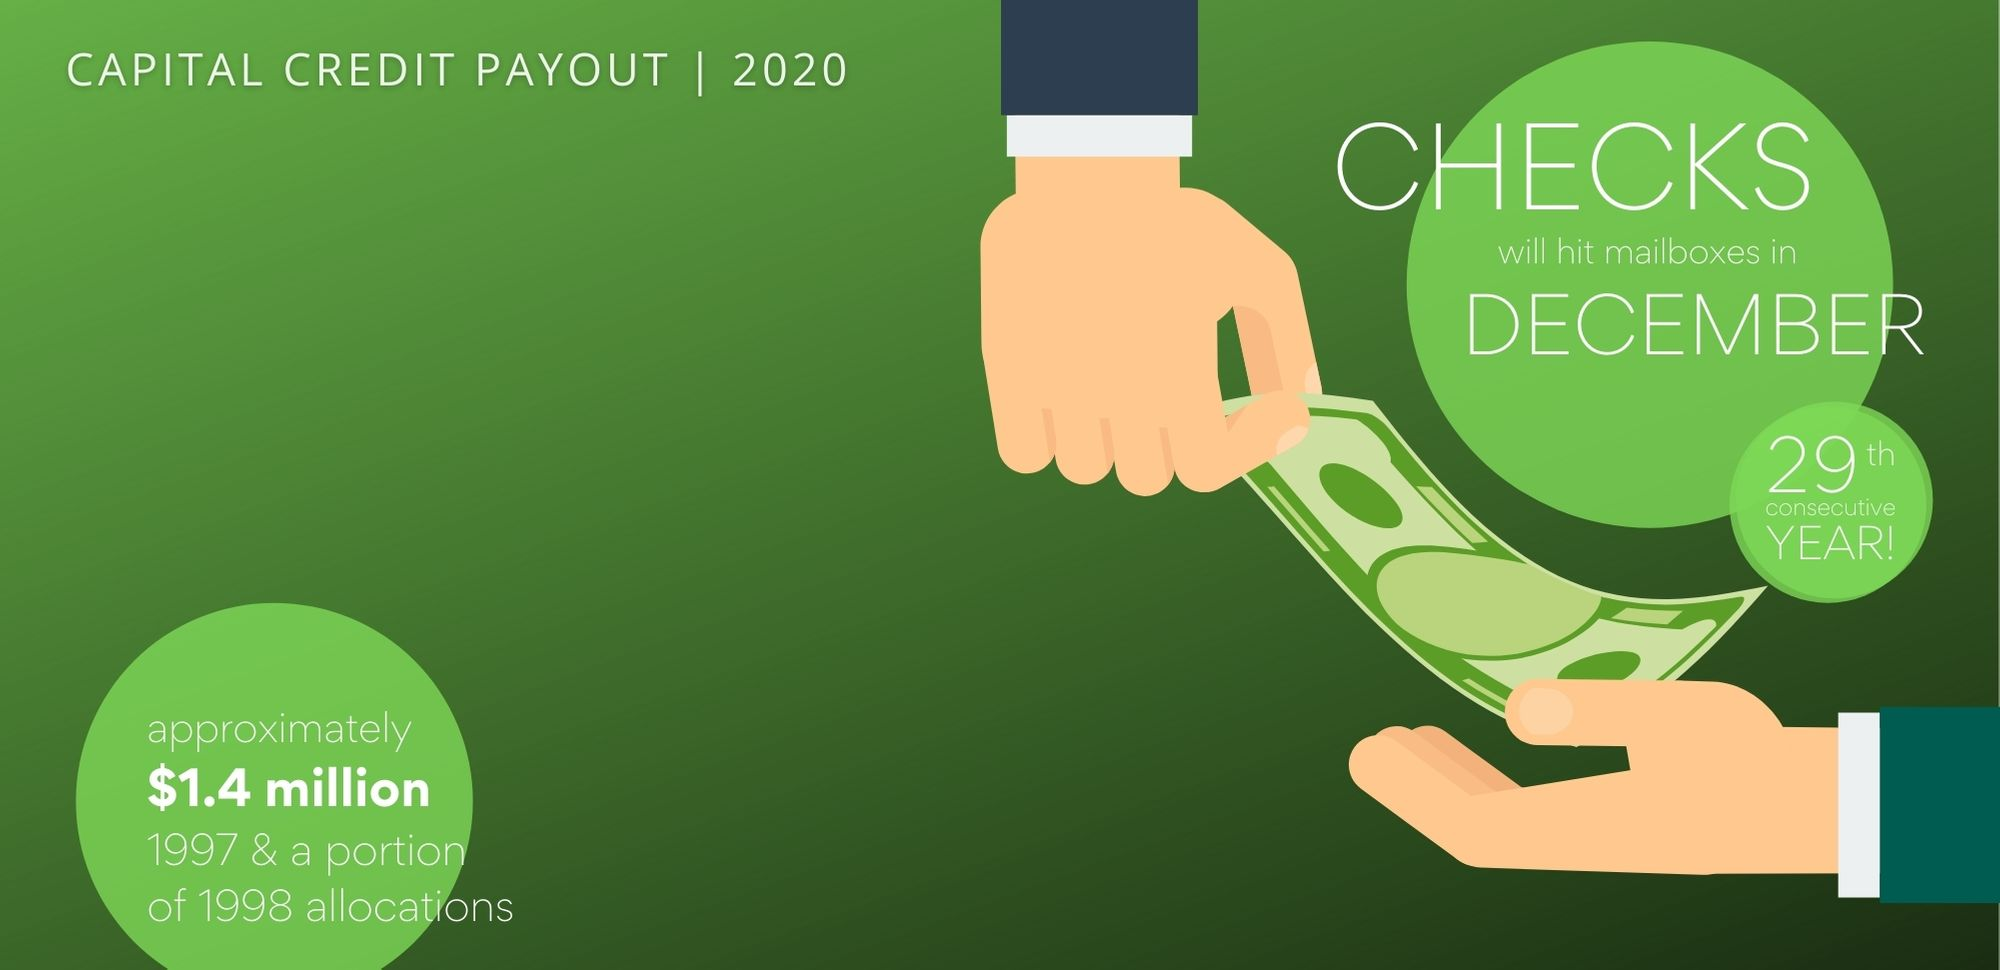 Capital Credit 2020 Payout